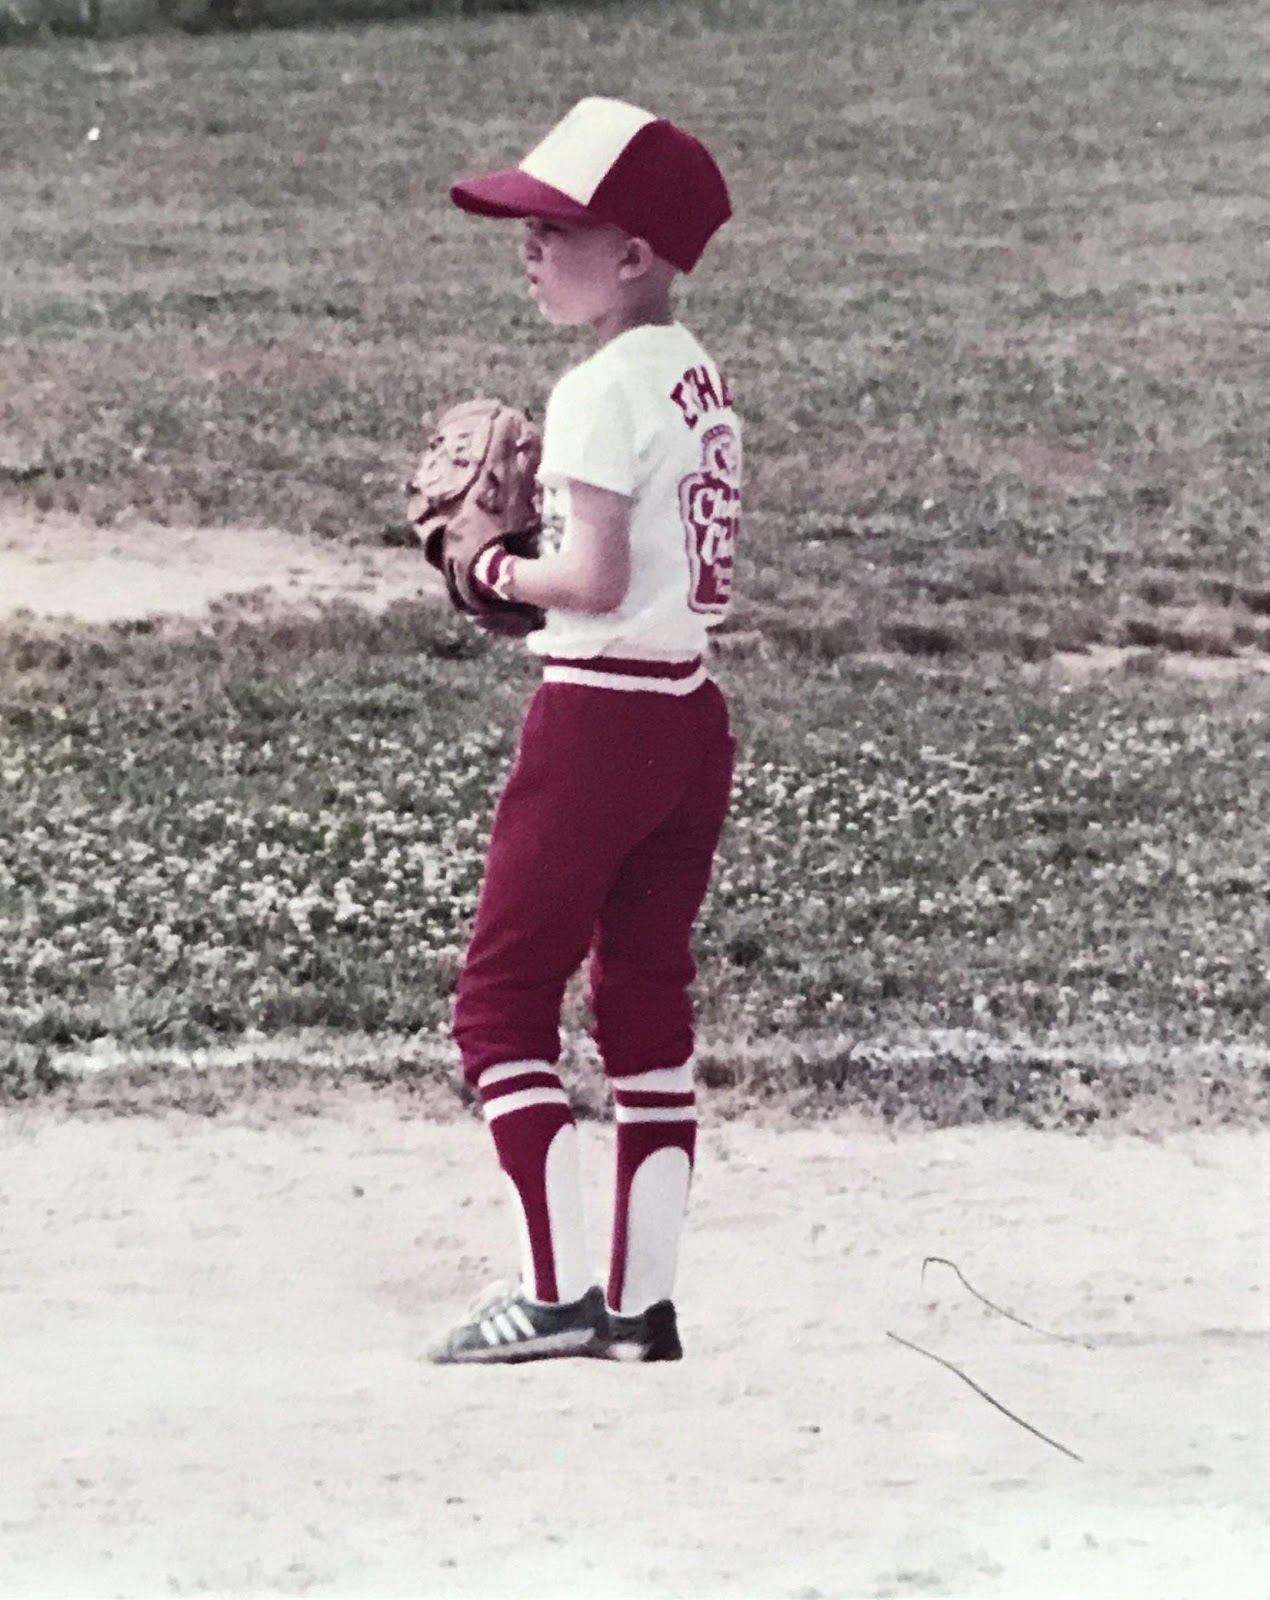 A kid wearing a baseball gloveDescription automatically generated with low confidence